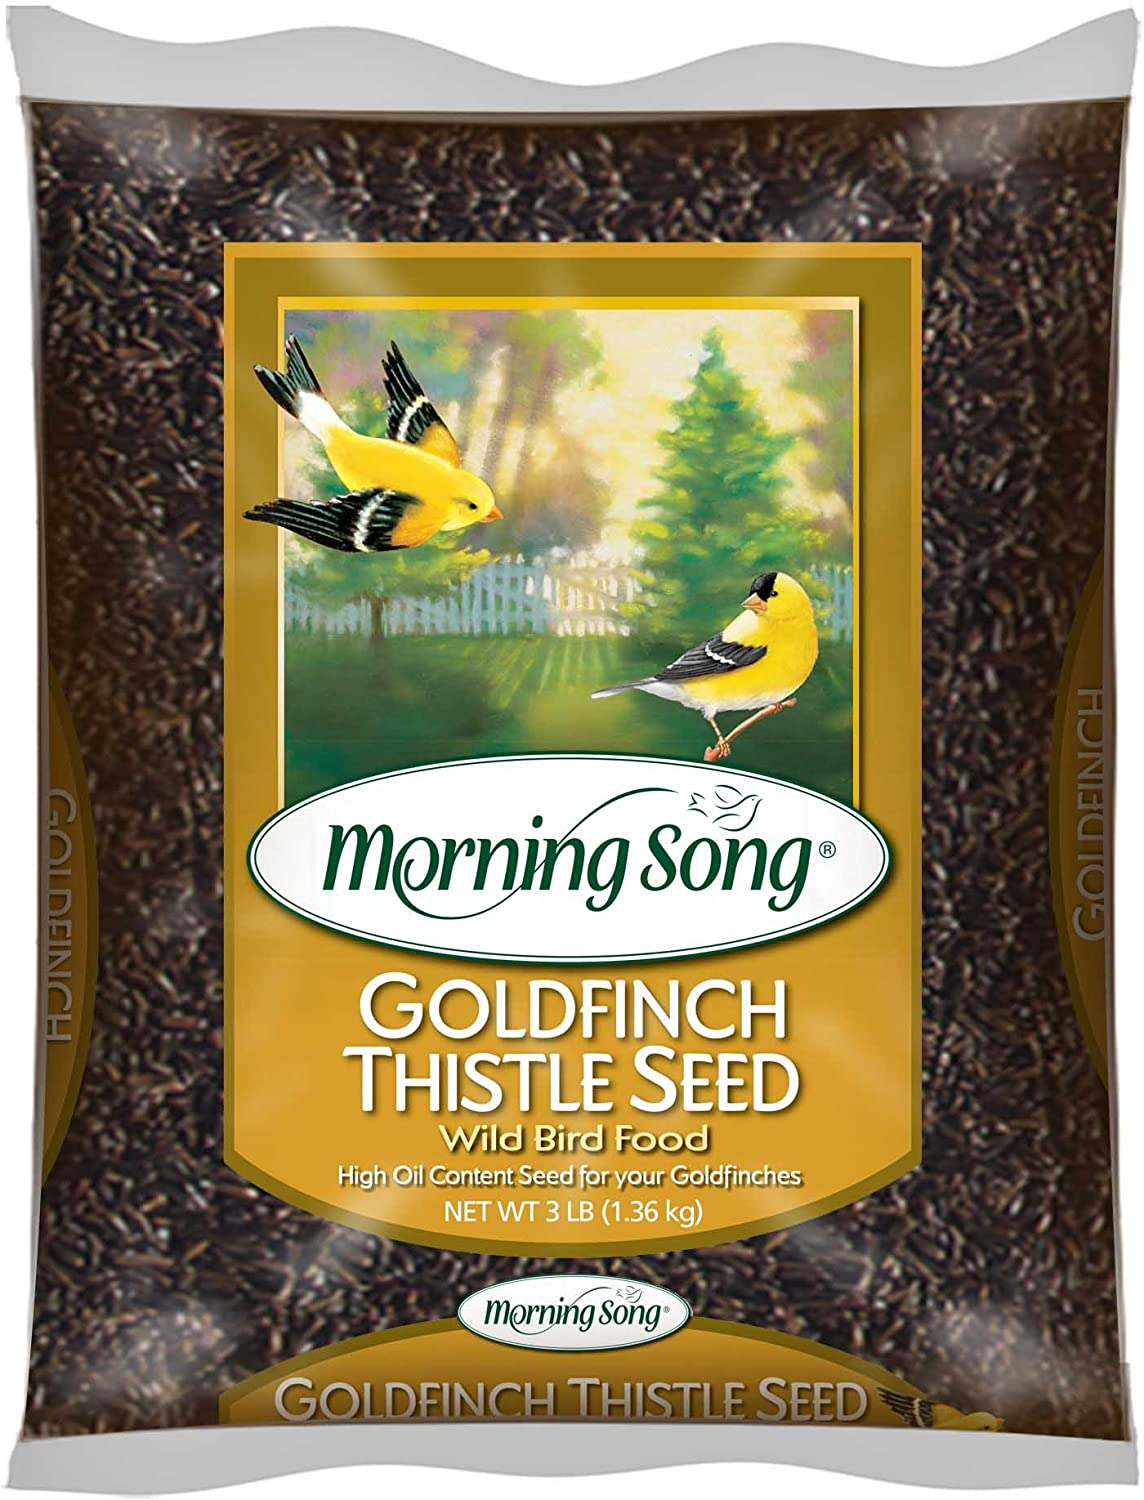 Morning Song 12000 Goldfinch Thistle Seed Wild Bird Food, 3-Pound